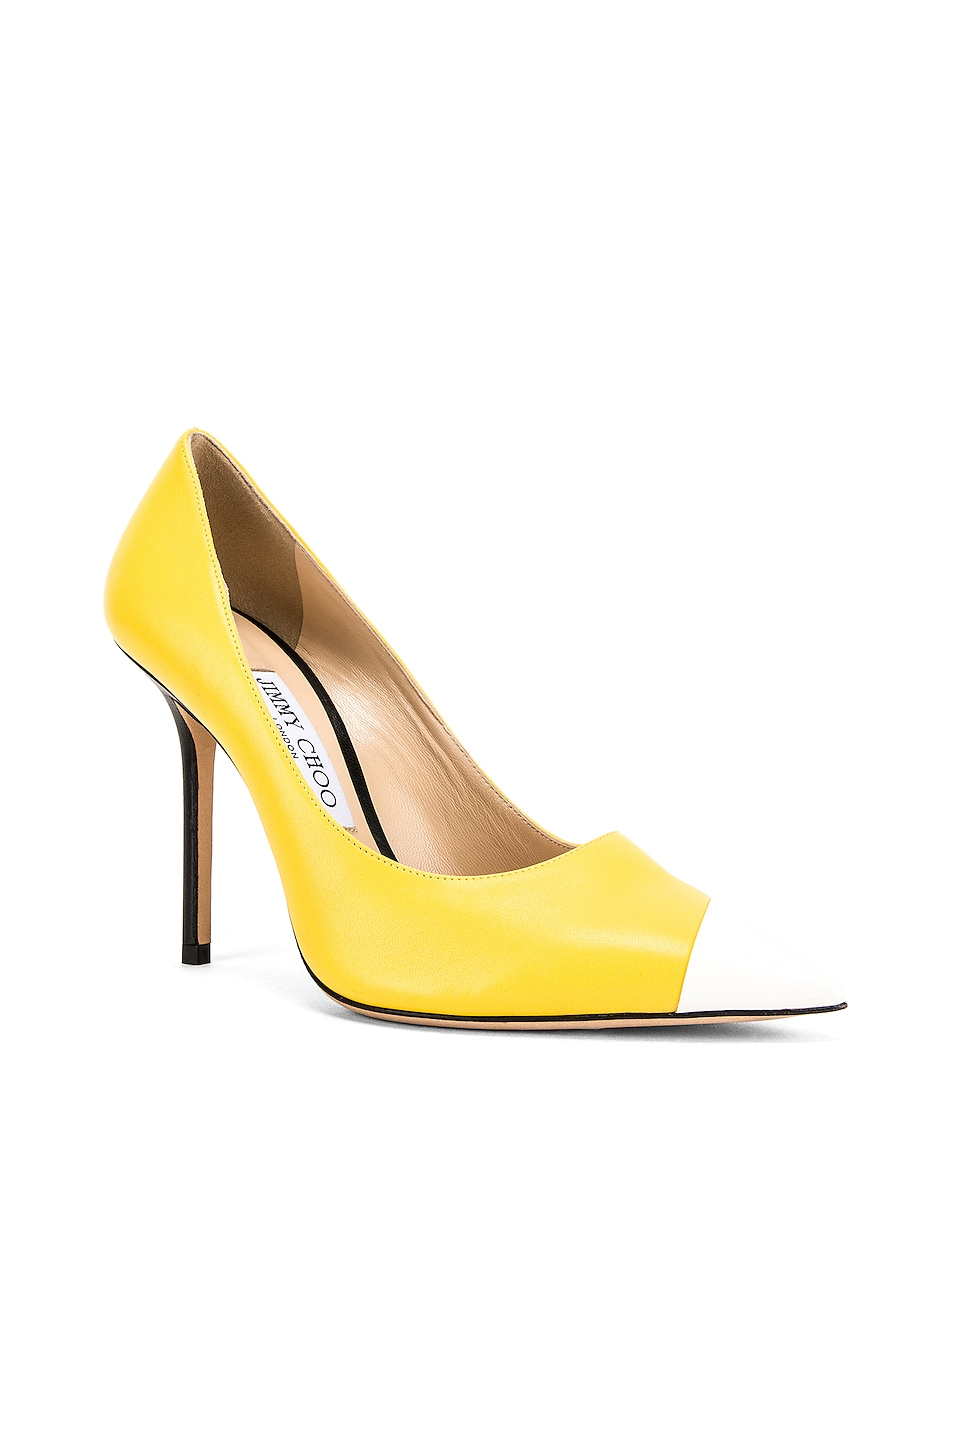 Image 3 of Jimmy Choo Love 100 Heel in Black, White & Fluo Yellow